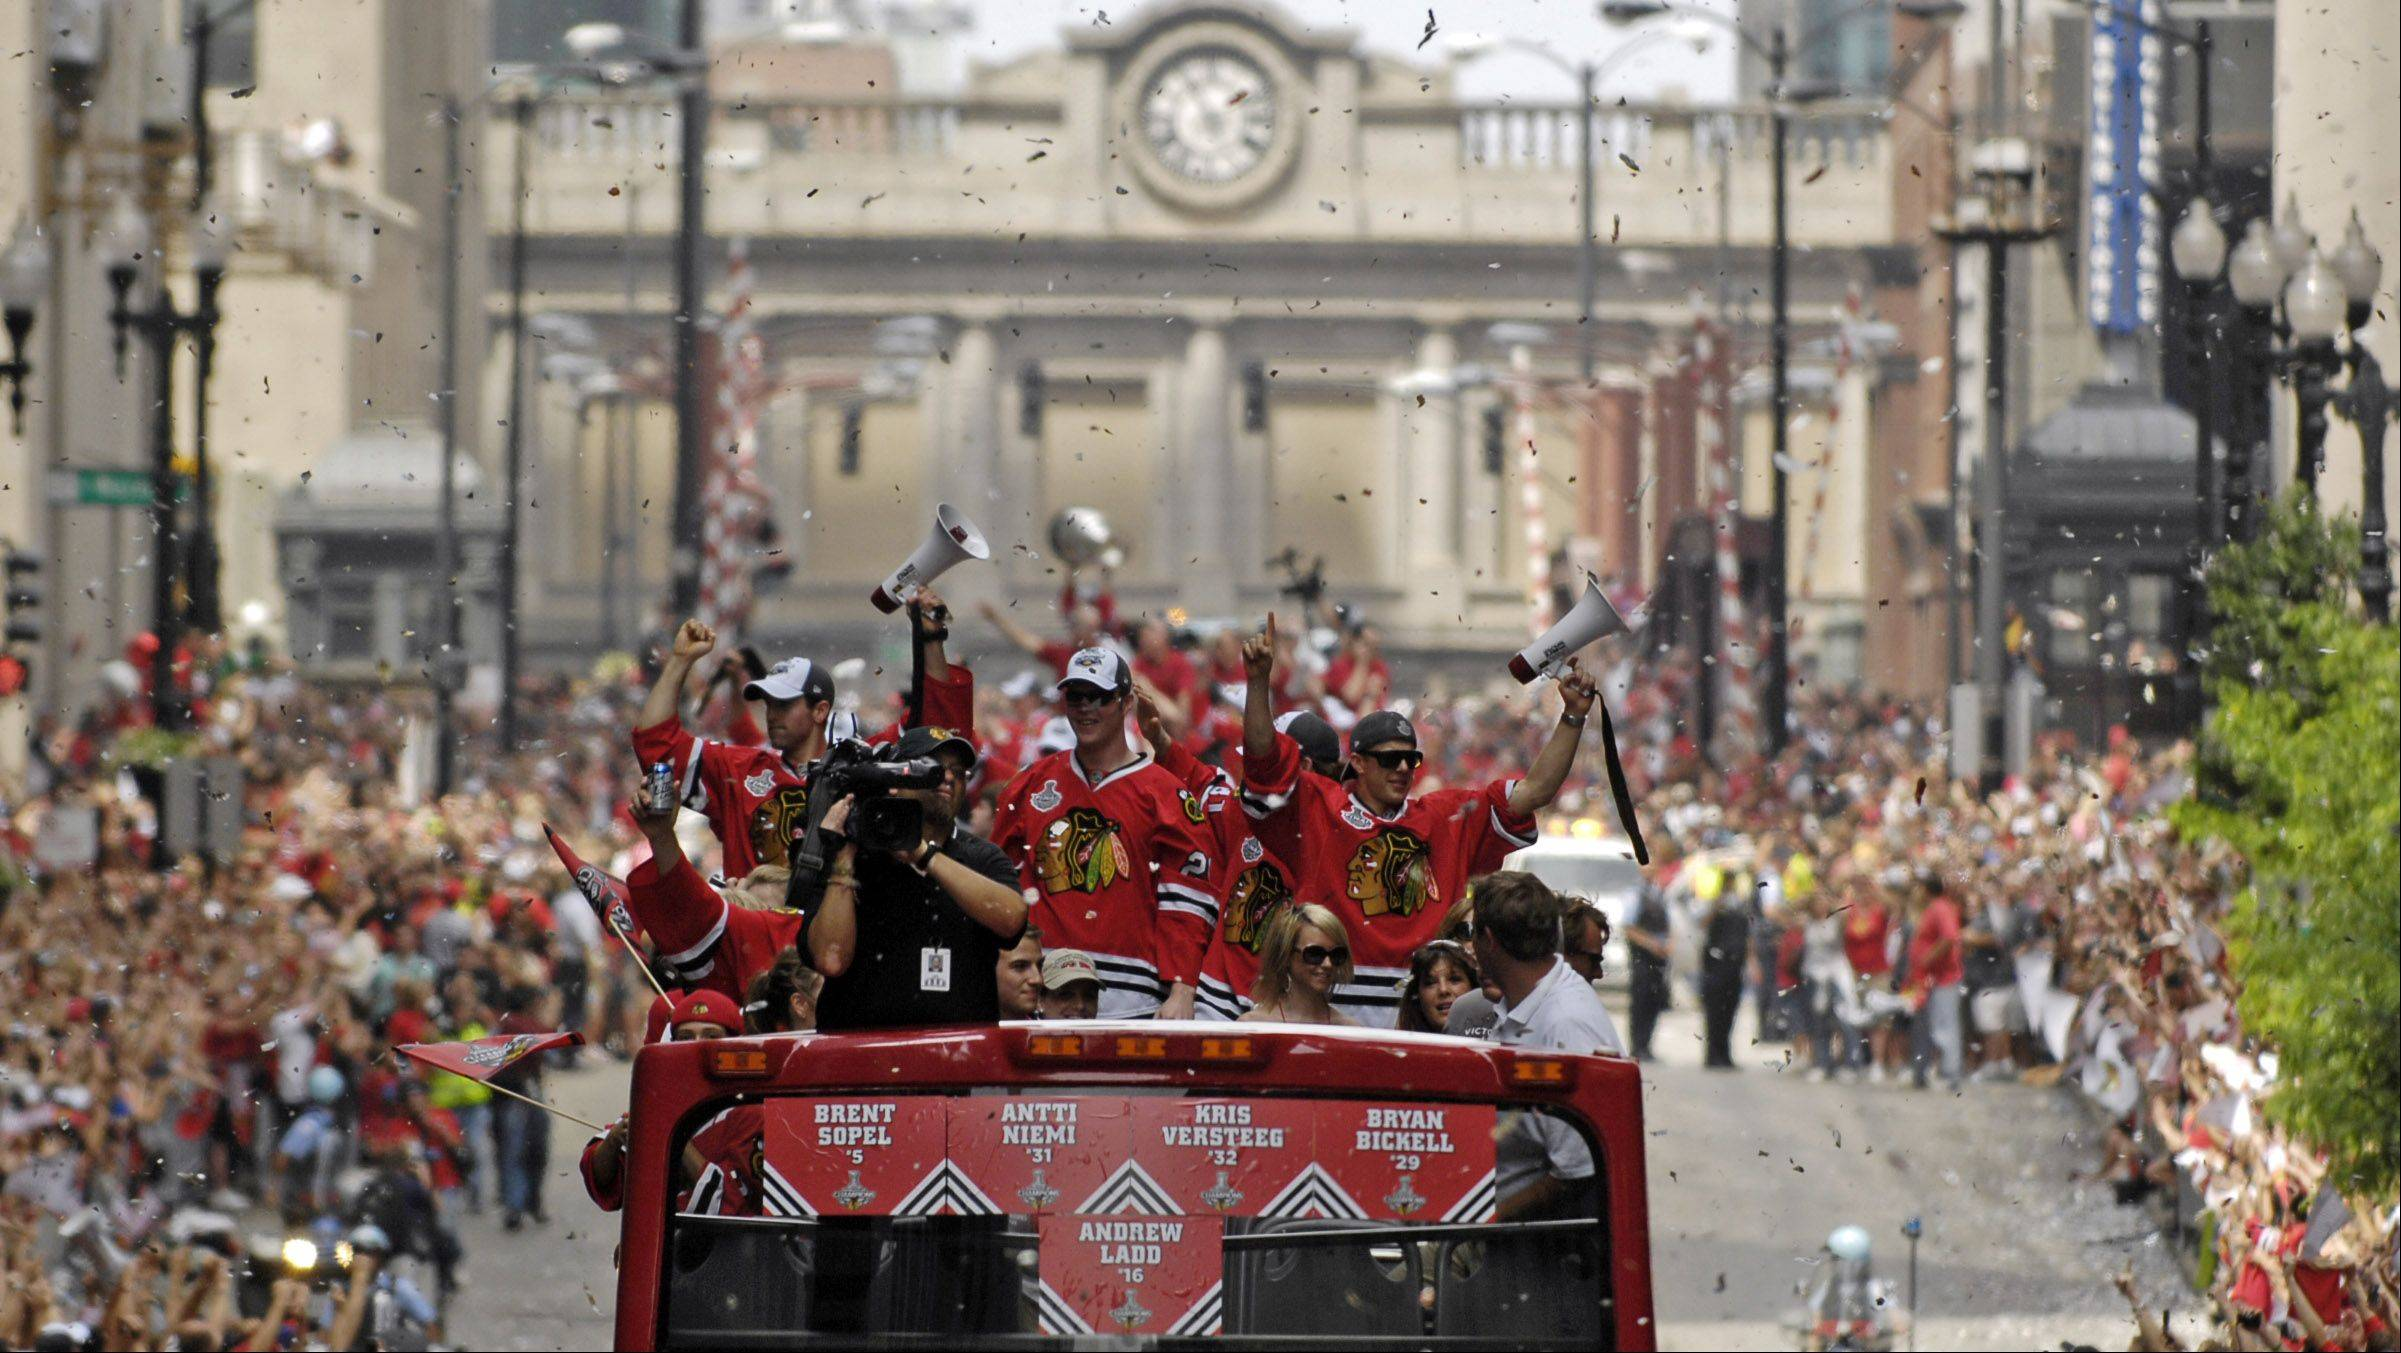 RICK WEST/rwest@dailyherald.com ¬ The Hawks make their way along Washington during Friday's victory parade for the Chicago Blackhawks following their Stanley Cup Finals win over Philadelphia.